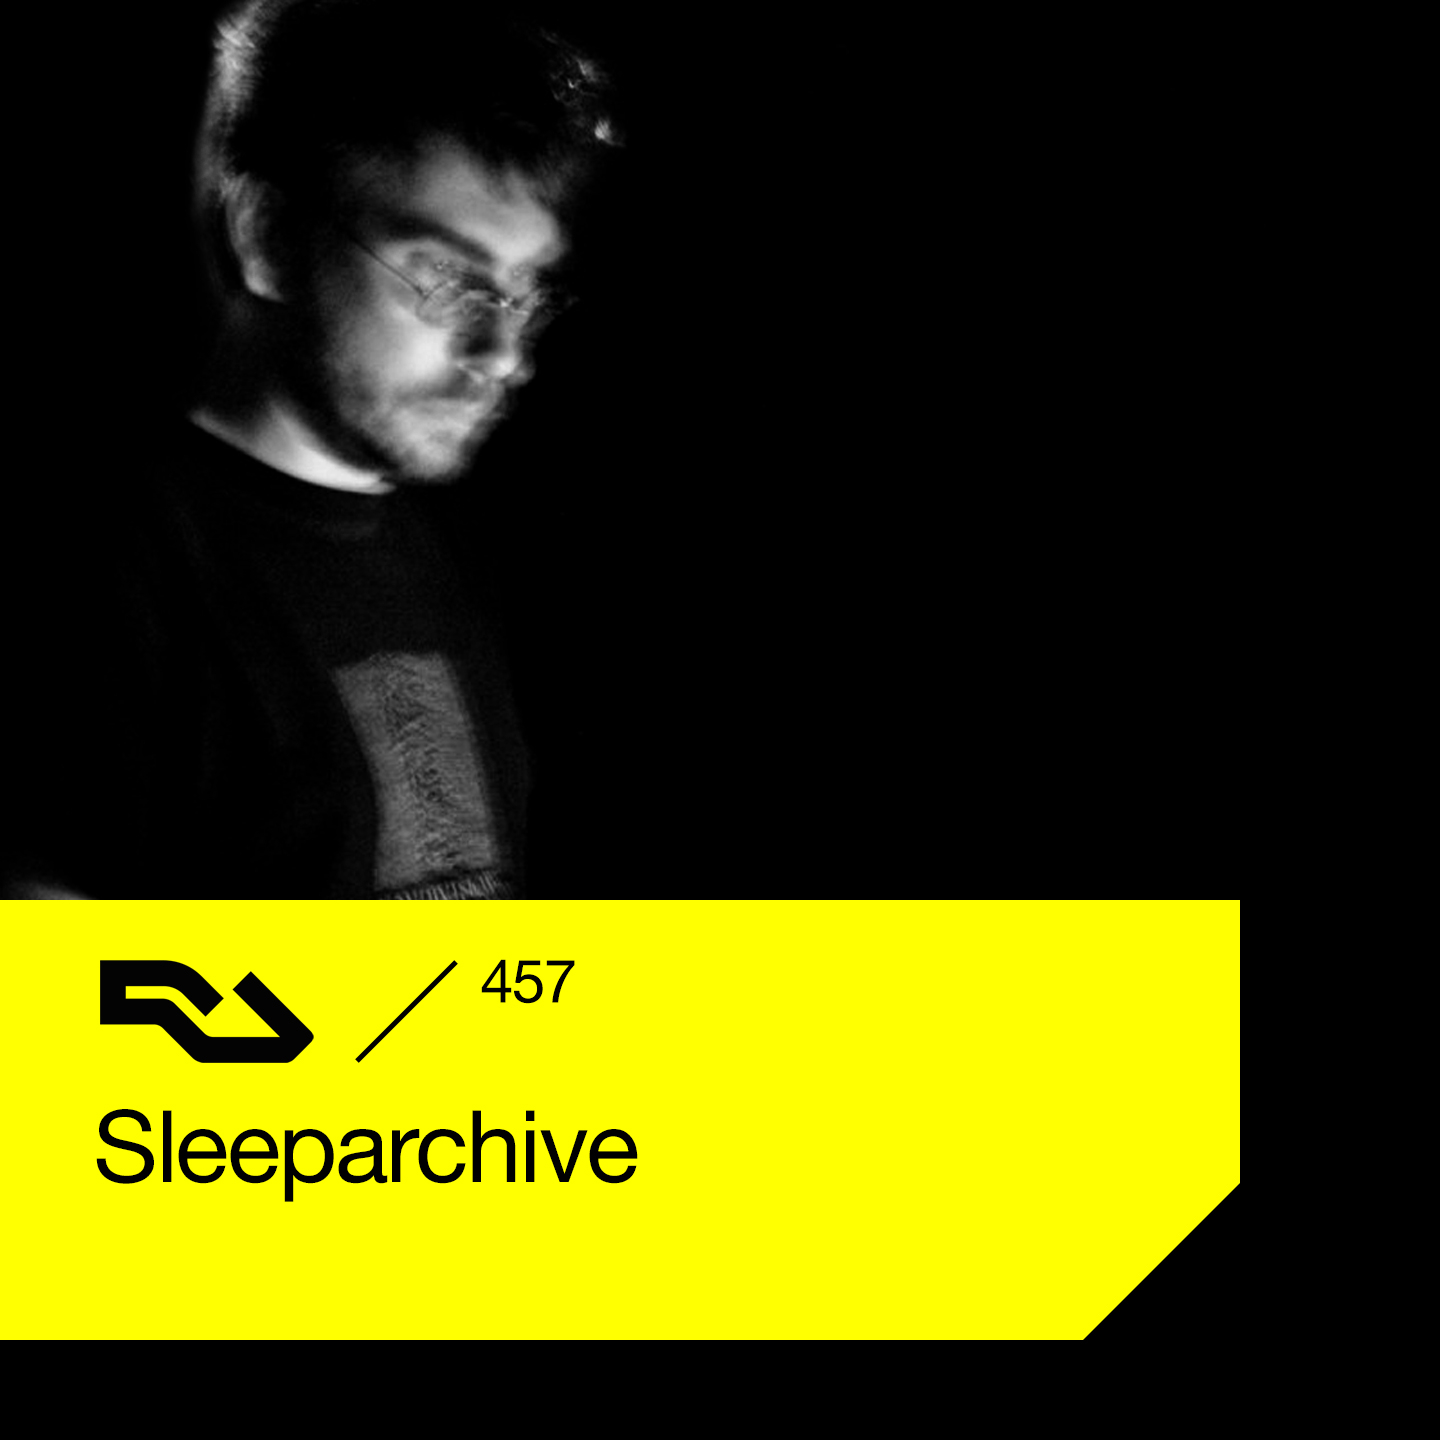 RA.457 Sleeparchive